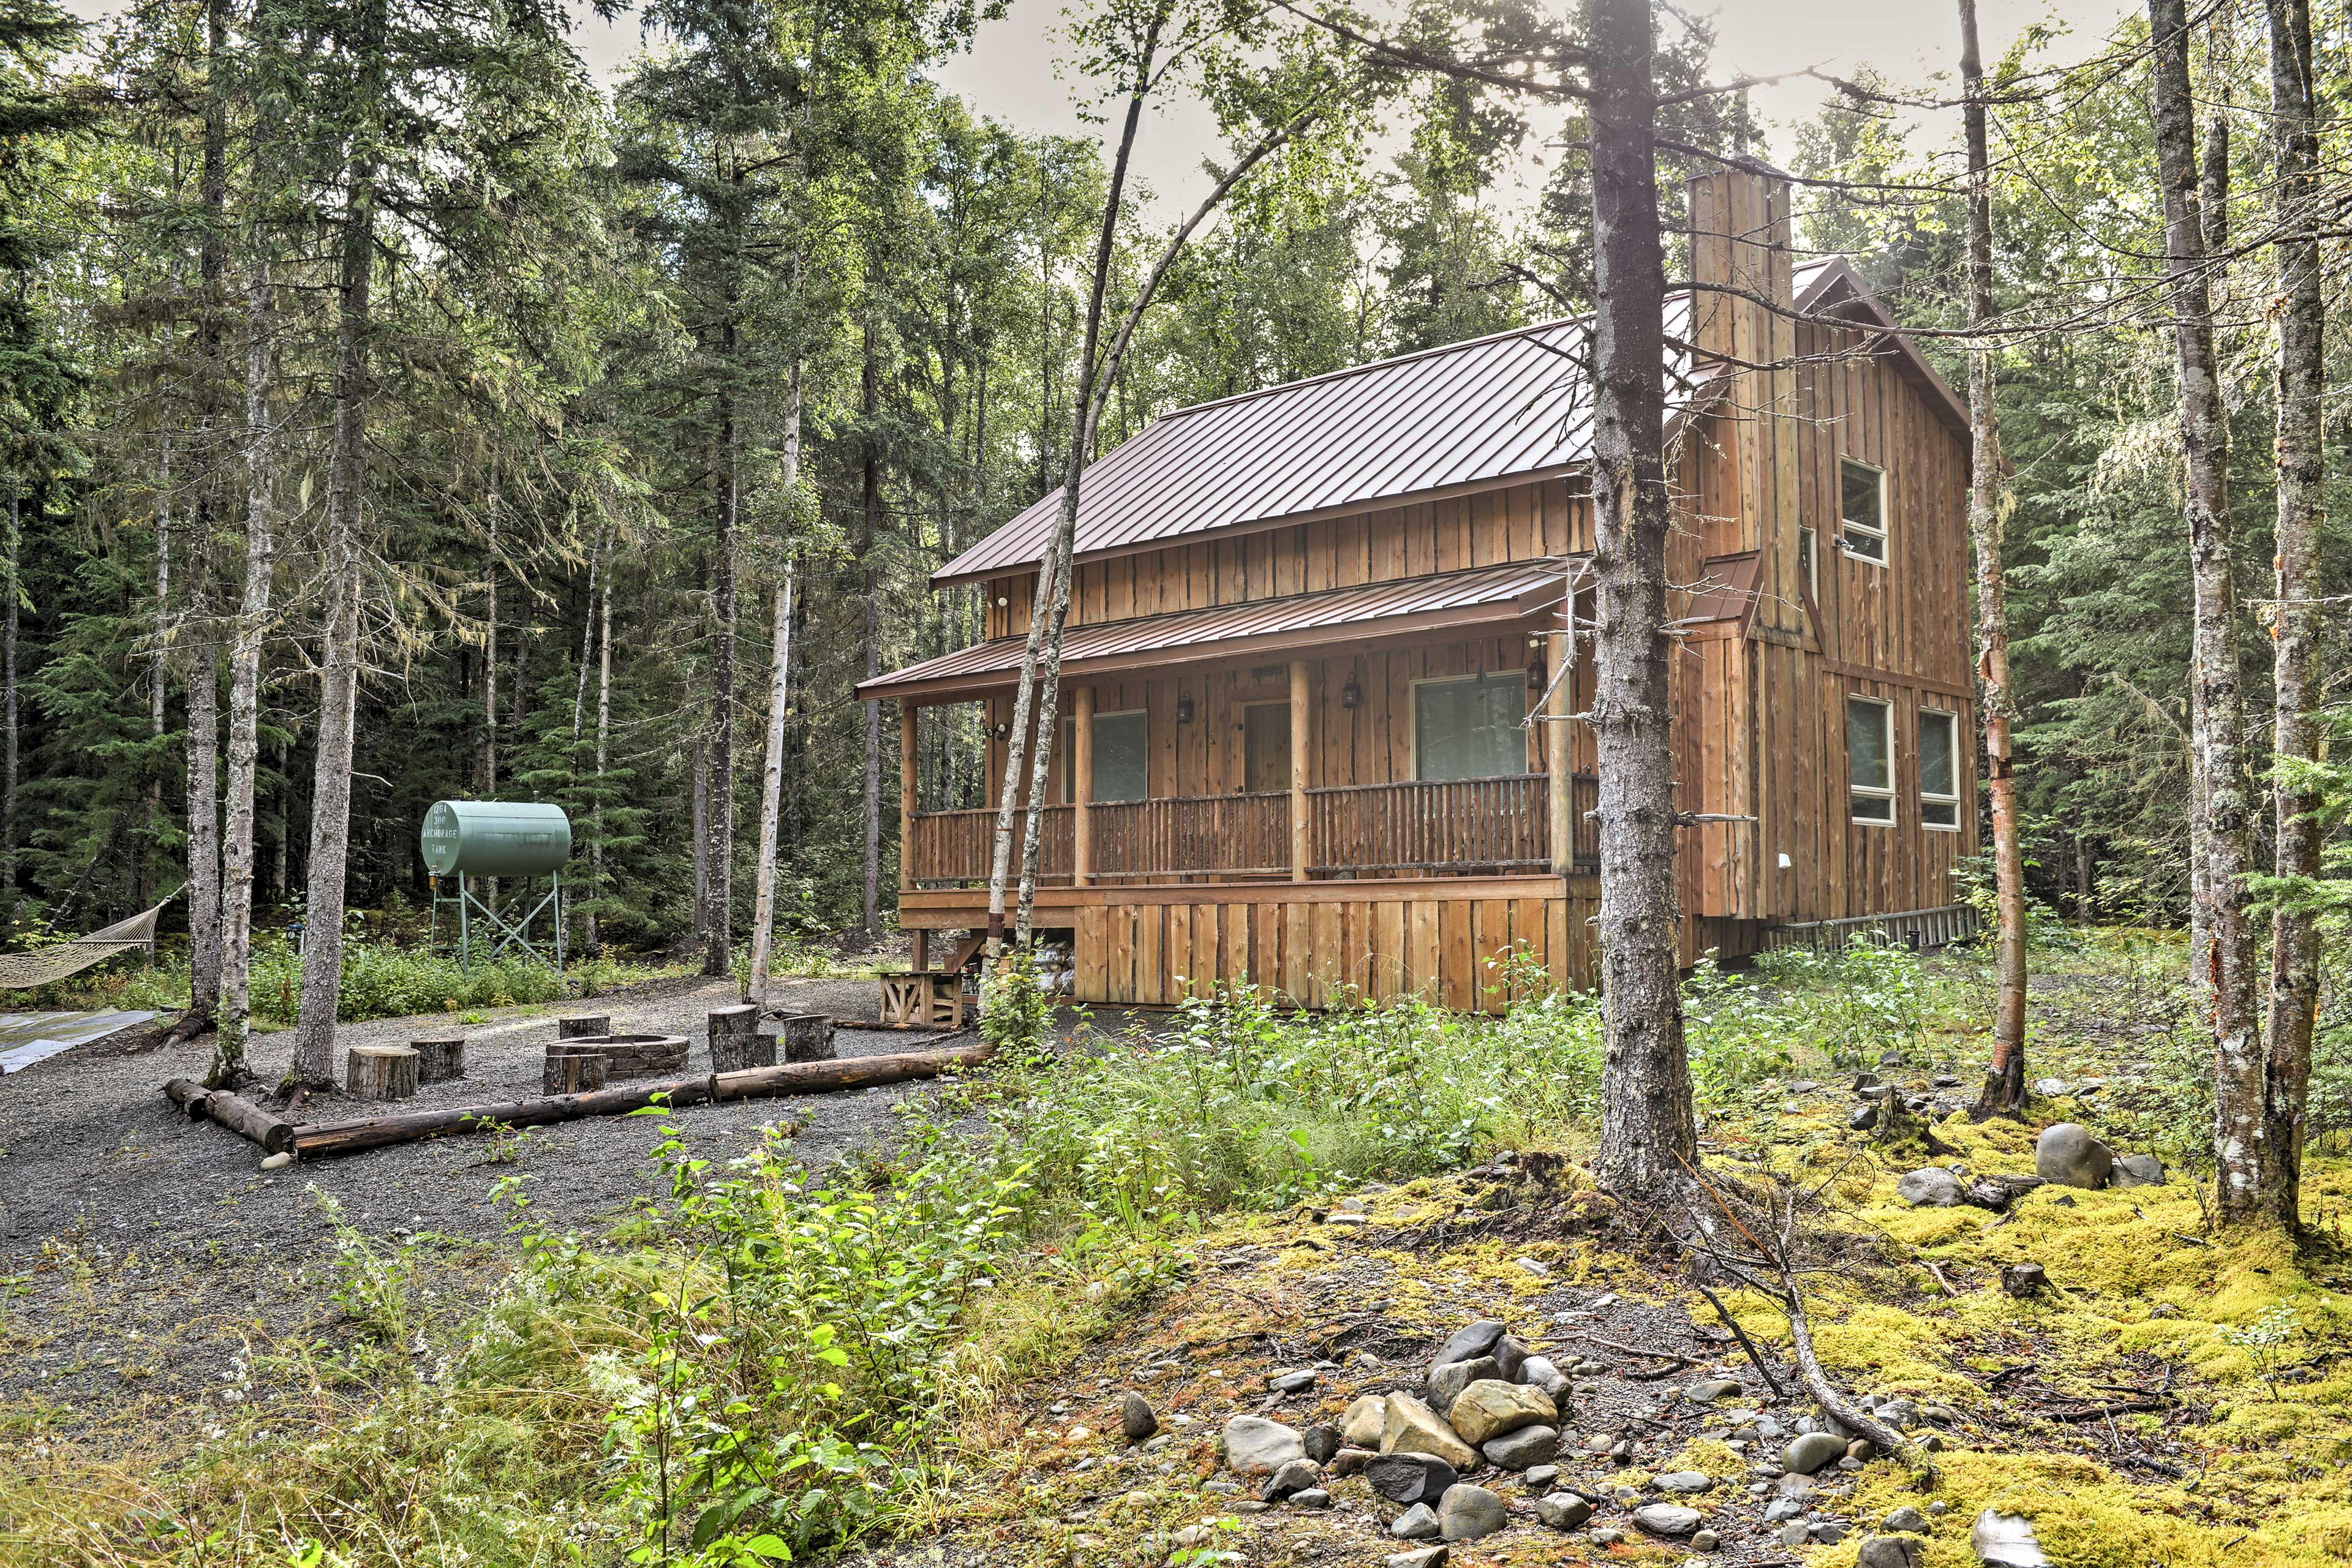 You'll love this cozy cabin in the woods!